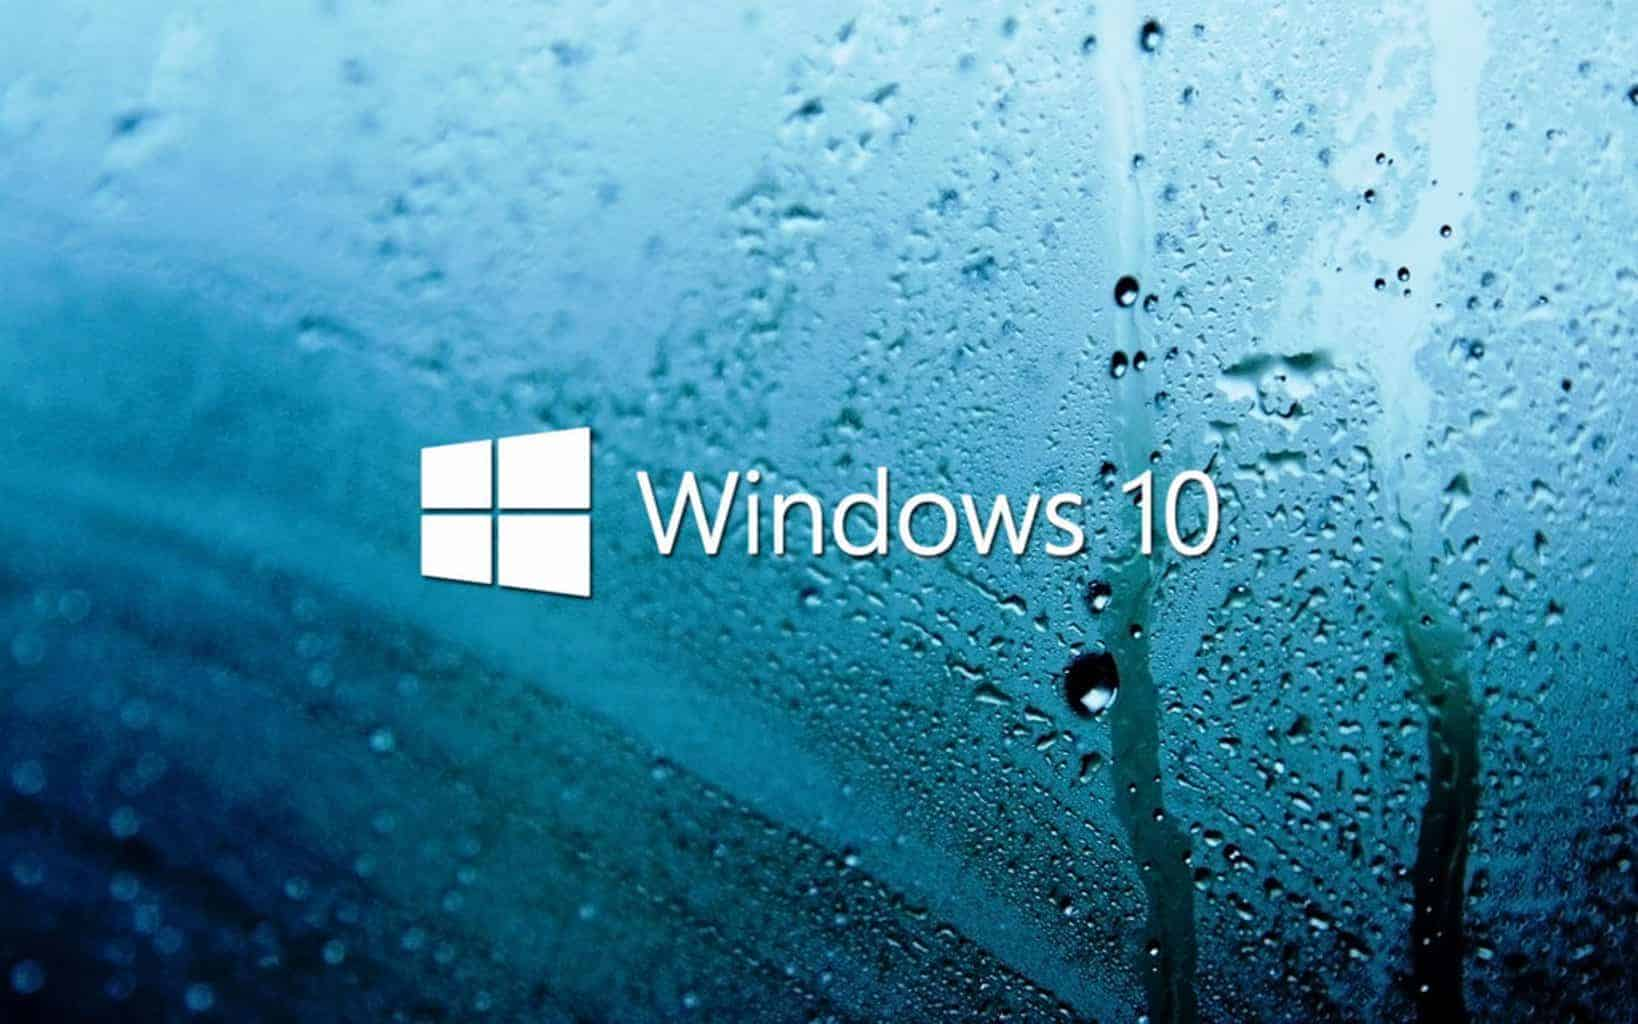 23 Of The Best Windows 10 Wallpaper Backgrounds